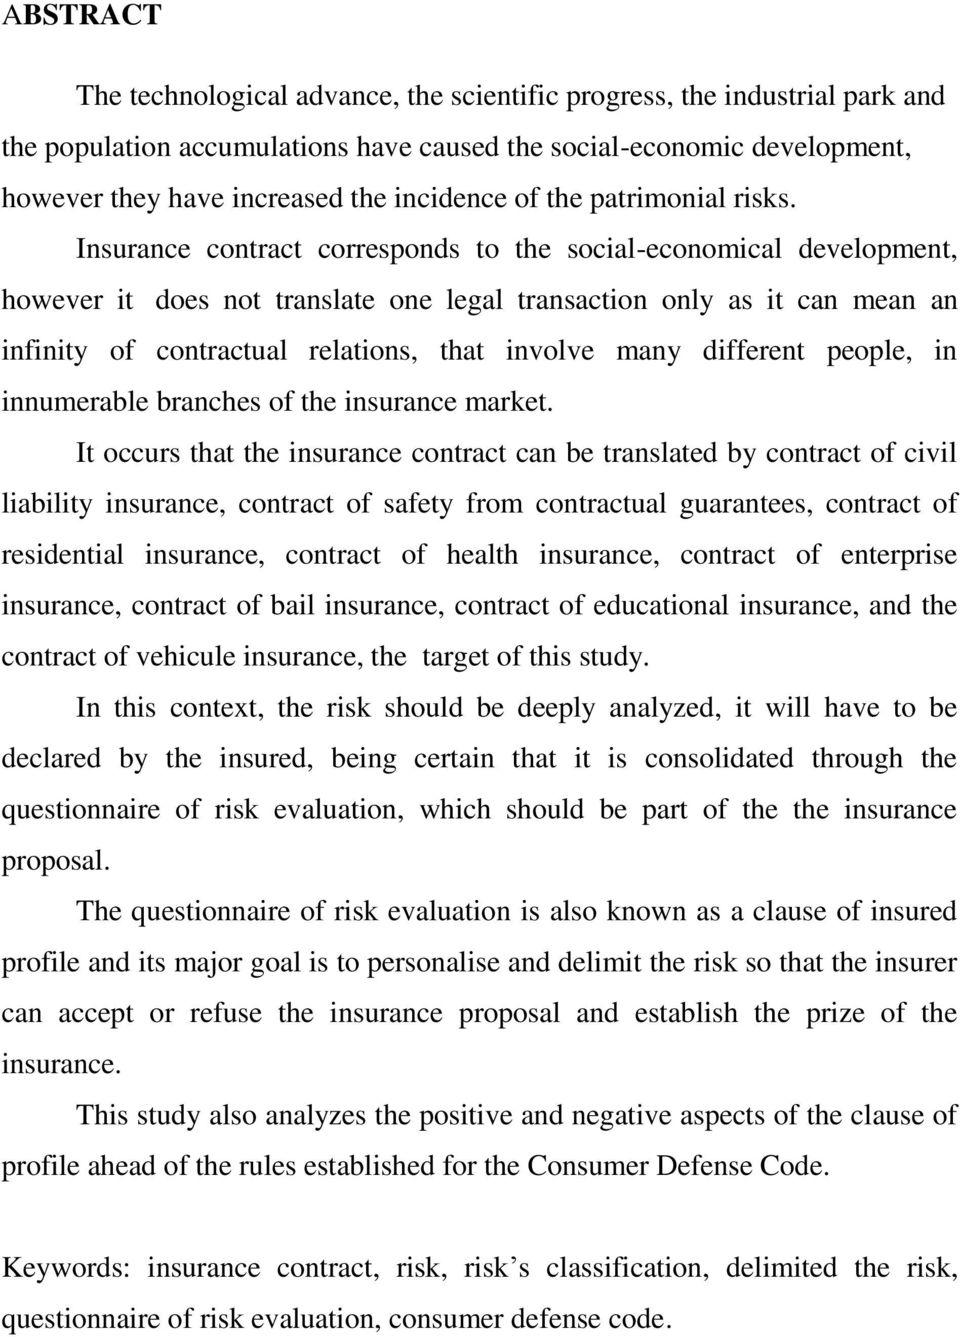 Insurance contract corresponds to the social-economical development, however it does not translate one legal transaction only as it can mean an infinity of contractual relations, that involve many